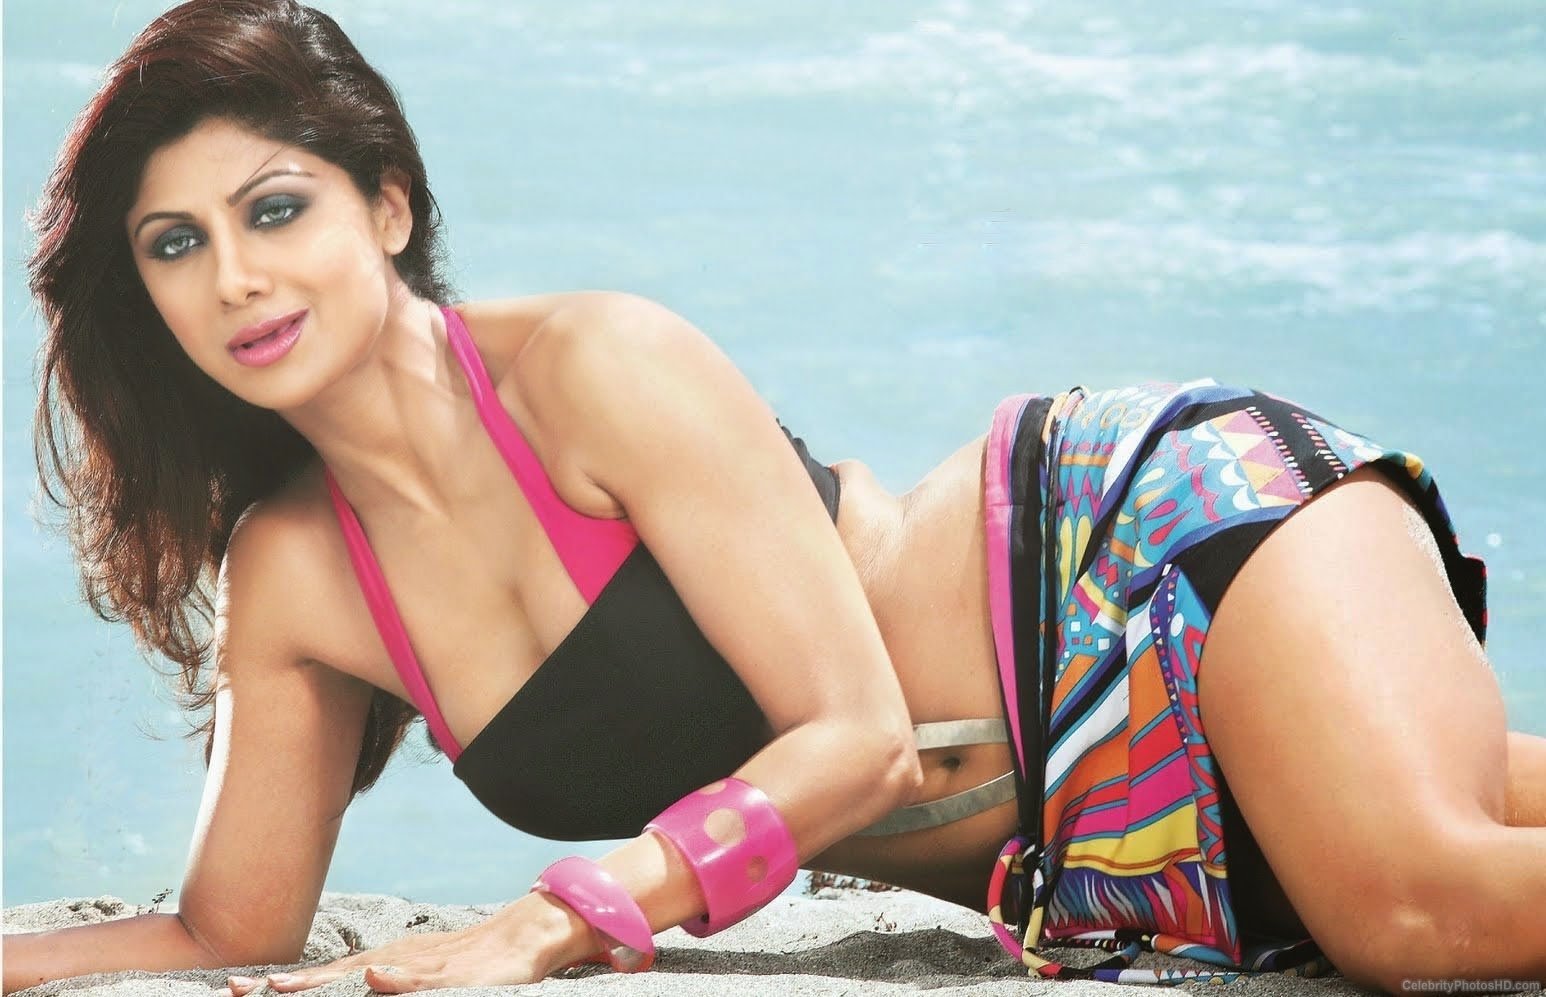 shilpa-shetty-latest-unseen-hot-photos-5